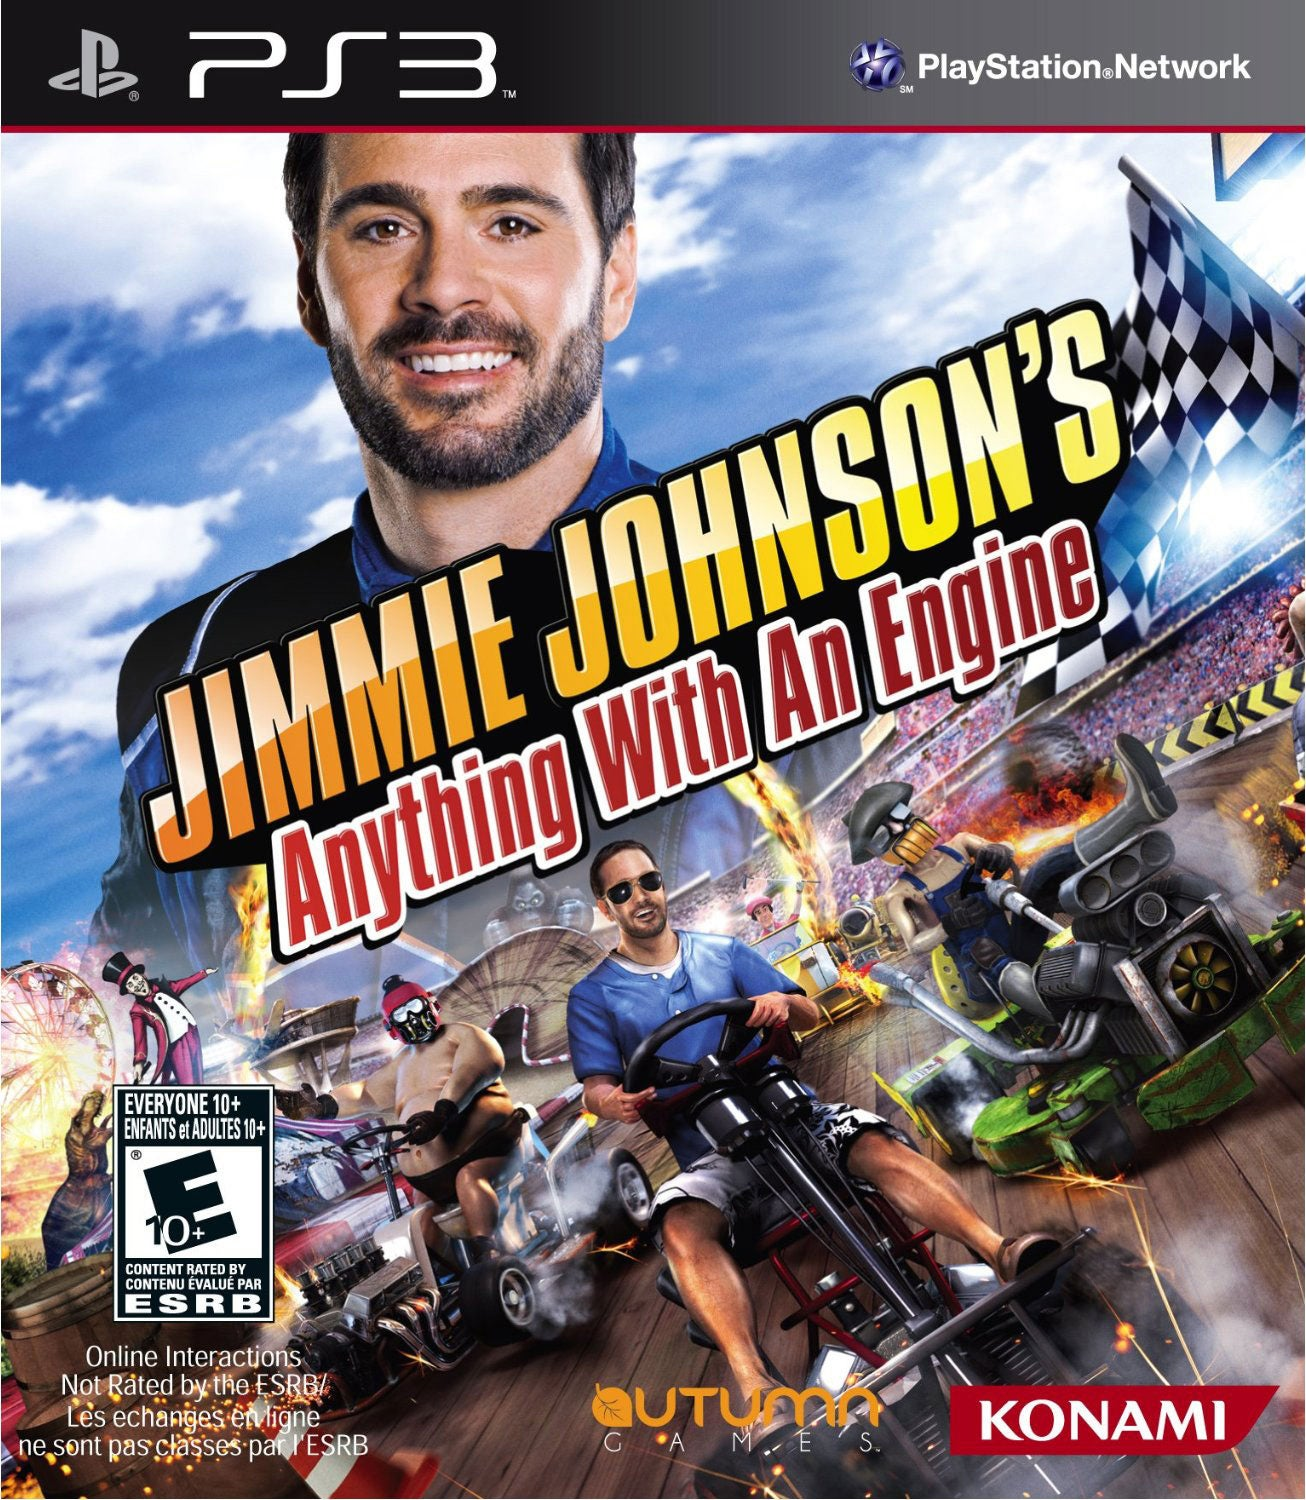 PS3 - Jimmie Johnson: Anything with an Engine